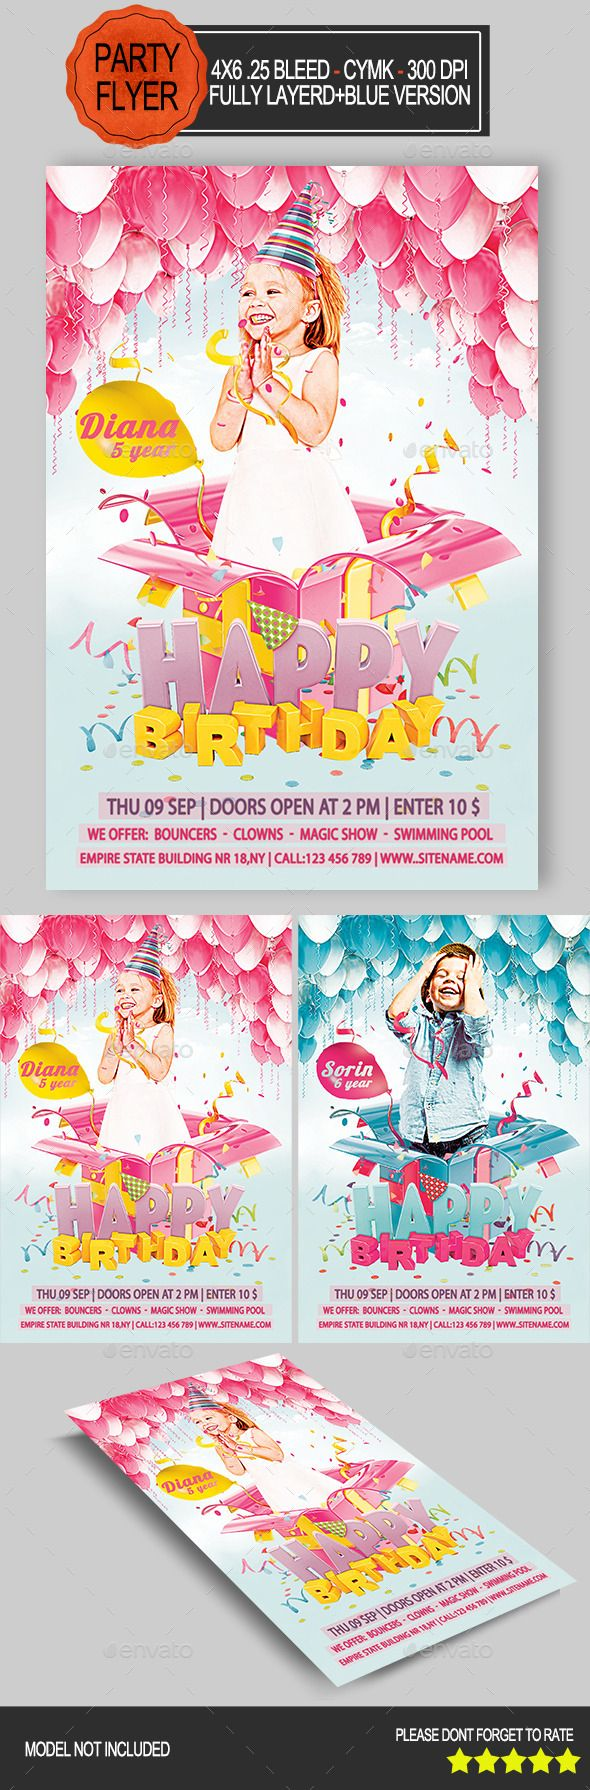 best images about logos posters logos kids birthday flyer